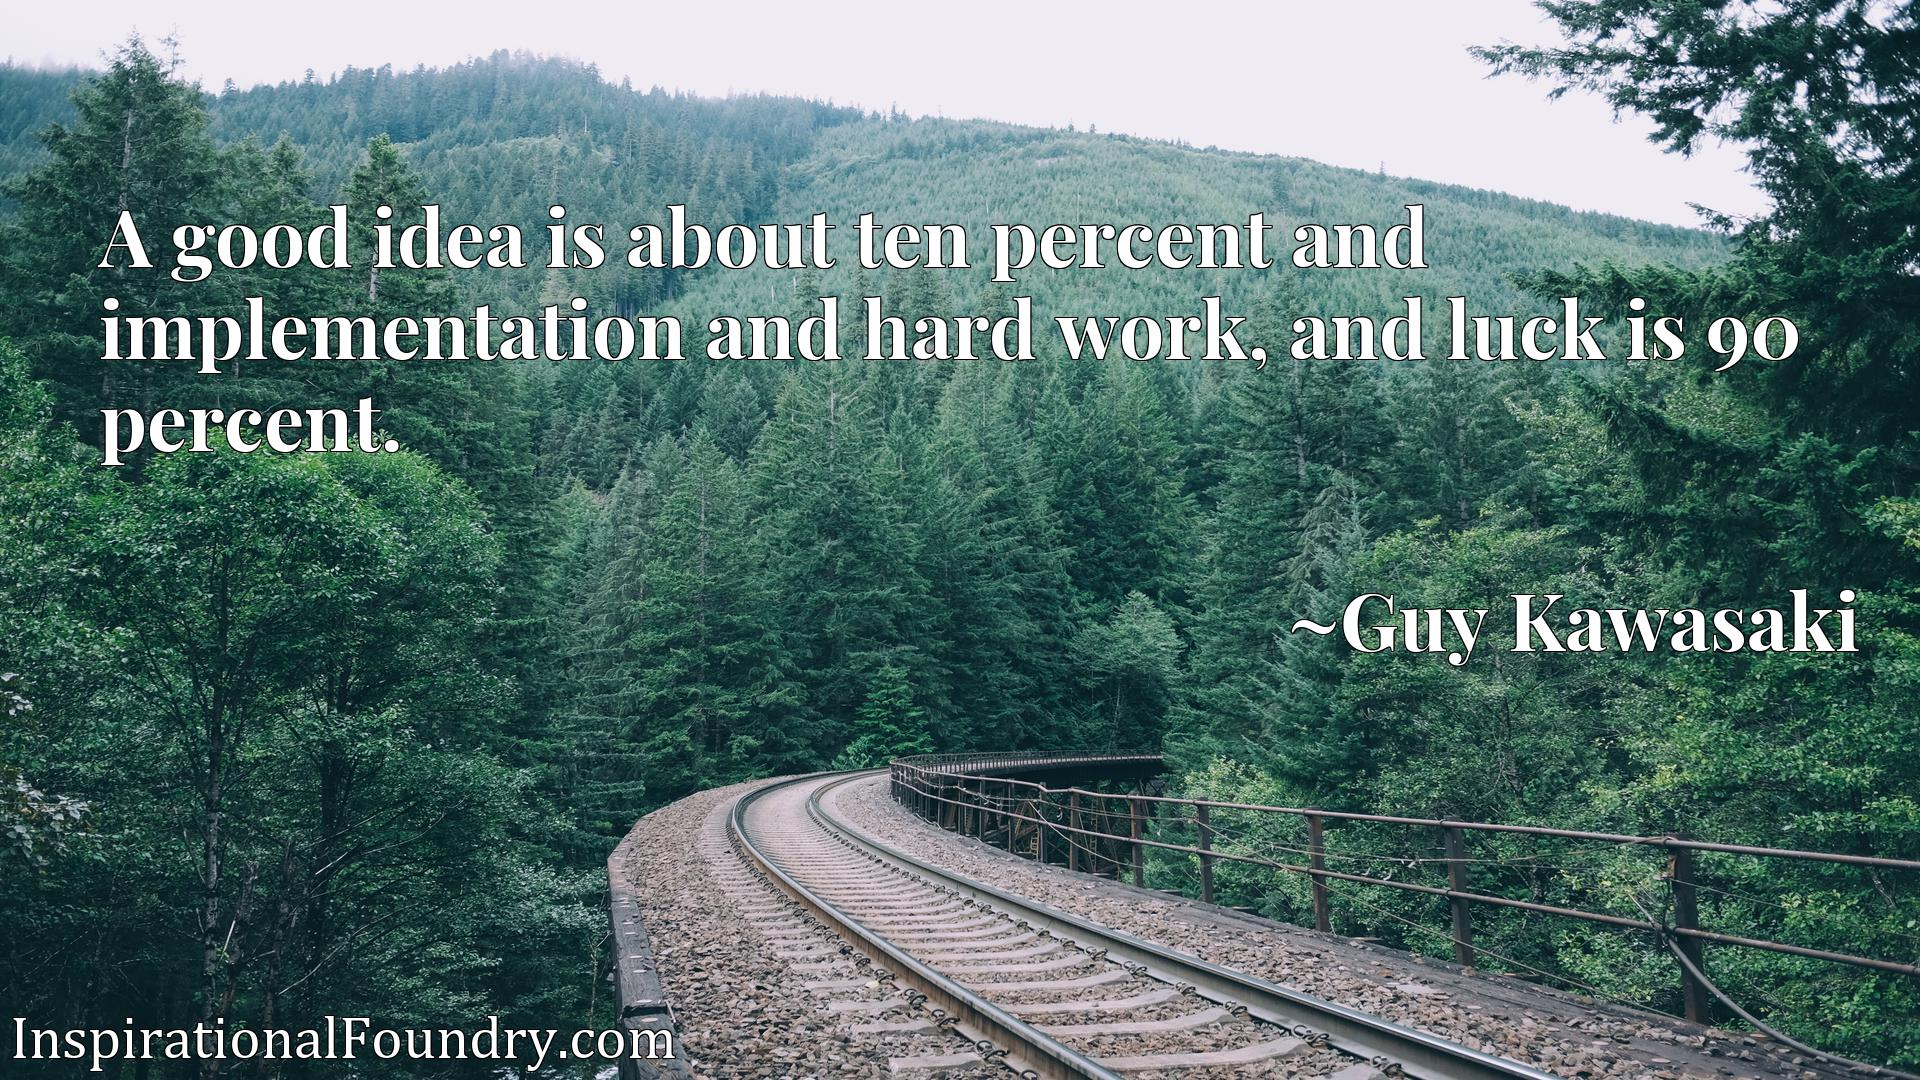 A good idea is about ten percent and implementation and hard work, and luck is 90 percent.